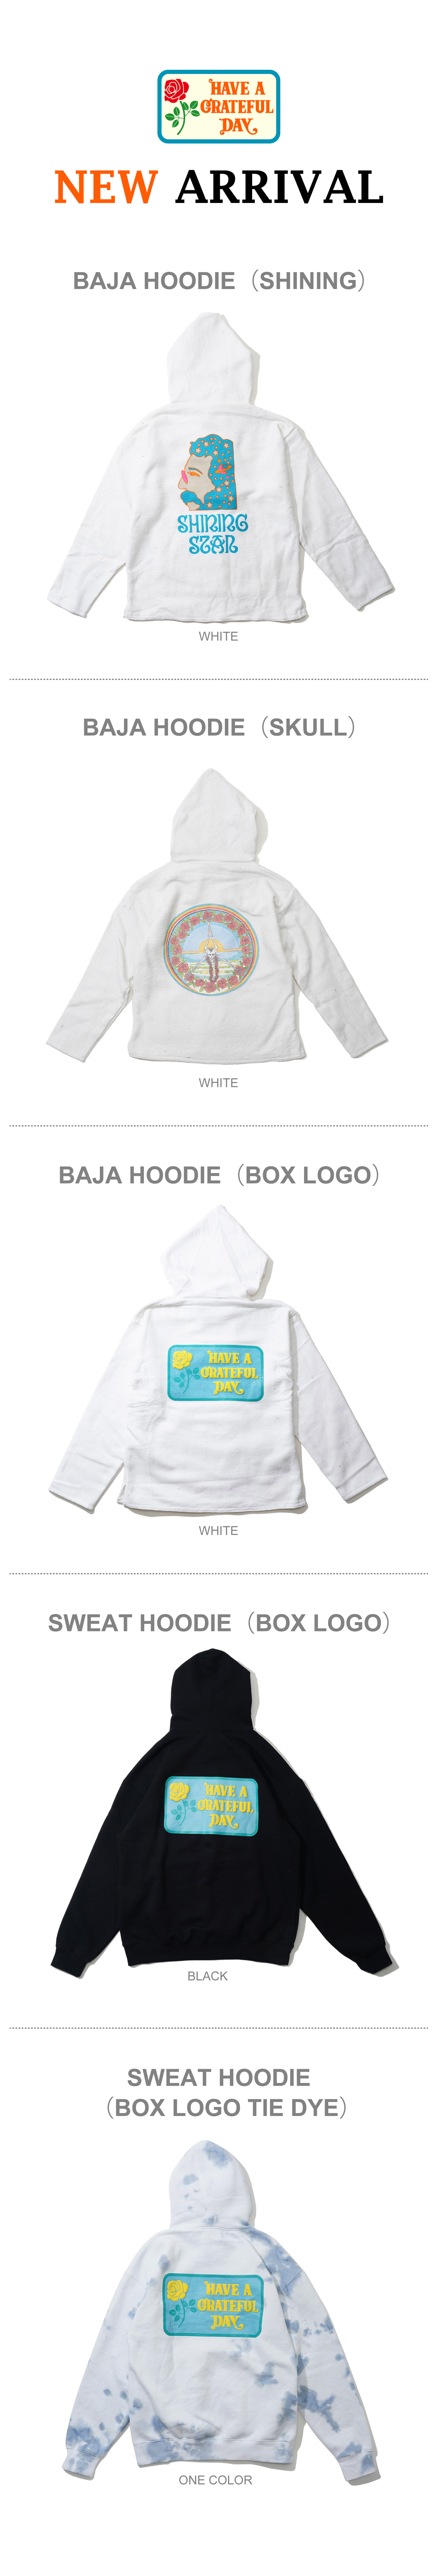 【HAVE A GRATEFUL DAY】BAJA HOODIE と SWEAT HOODIE を入荷しました